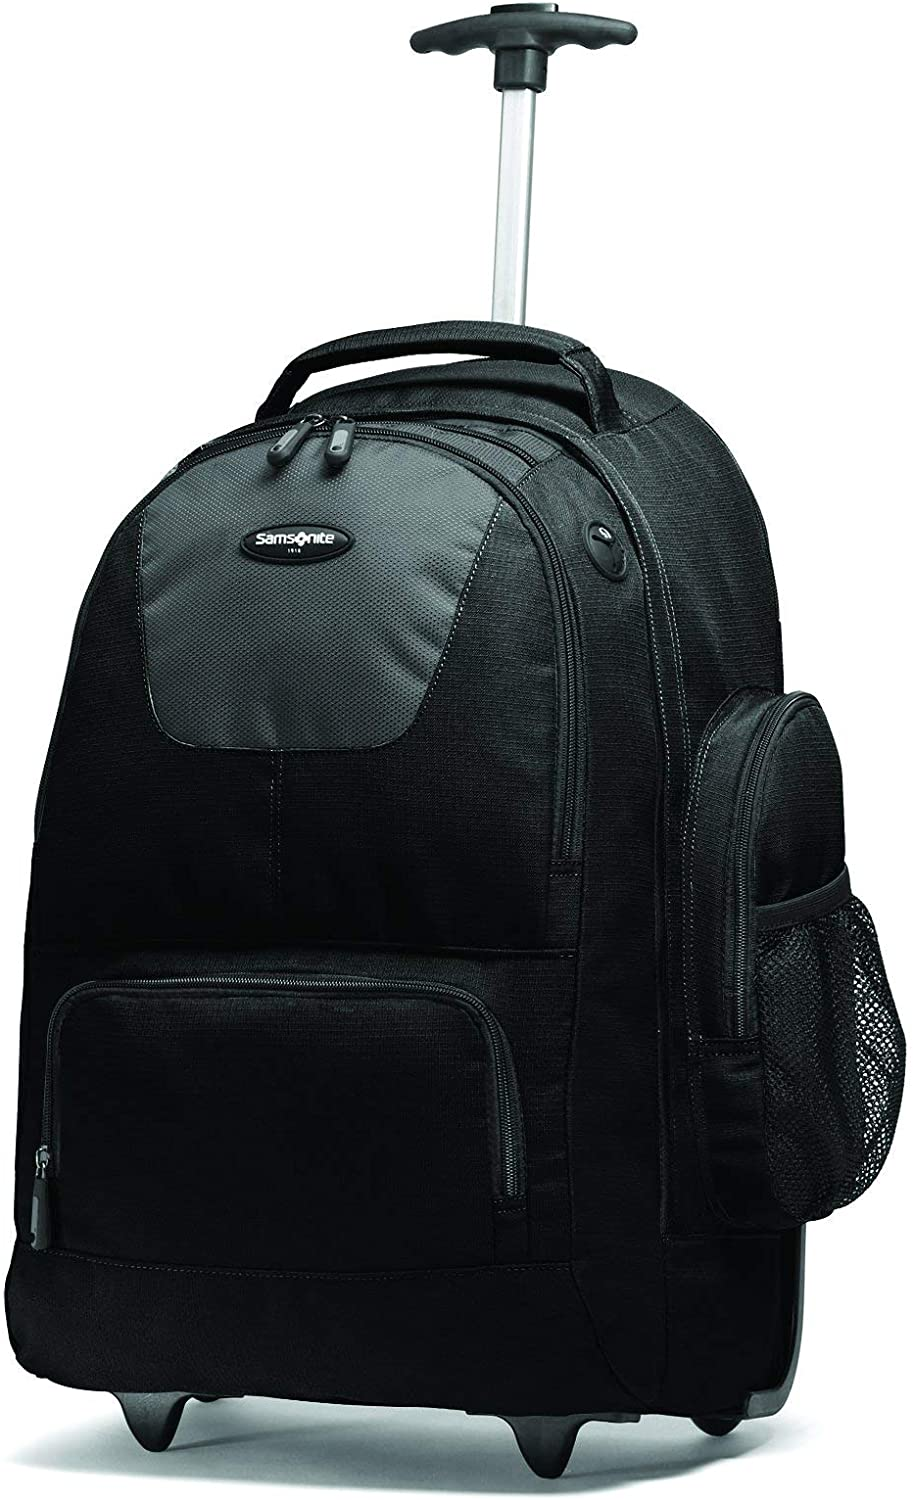 Samsonite Wheeled Backpack with Organizational Pockets, Black/Charcoal, One Size